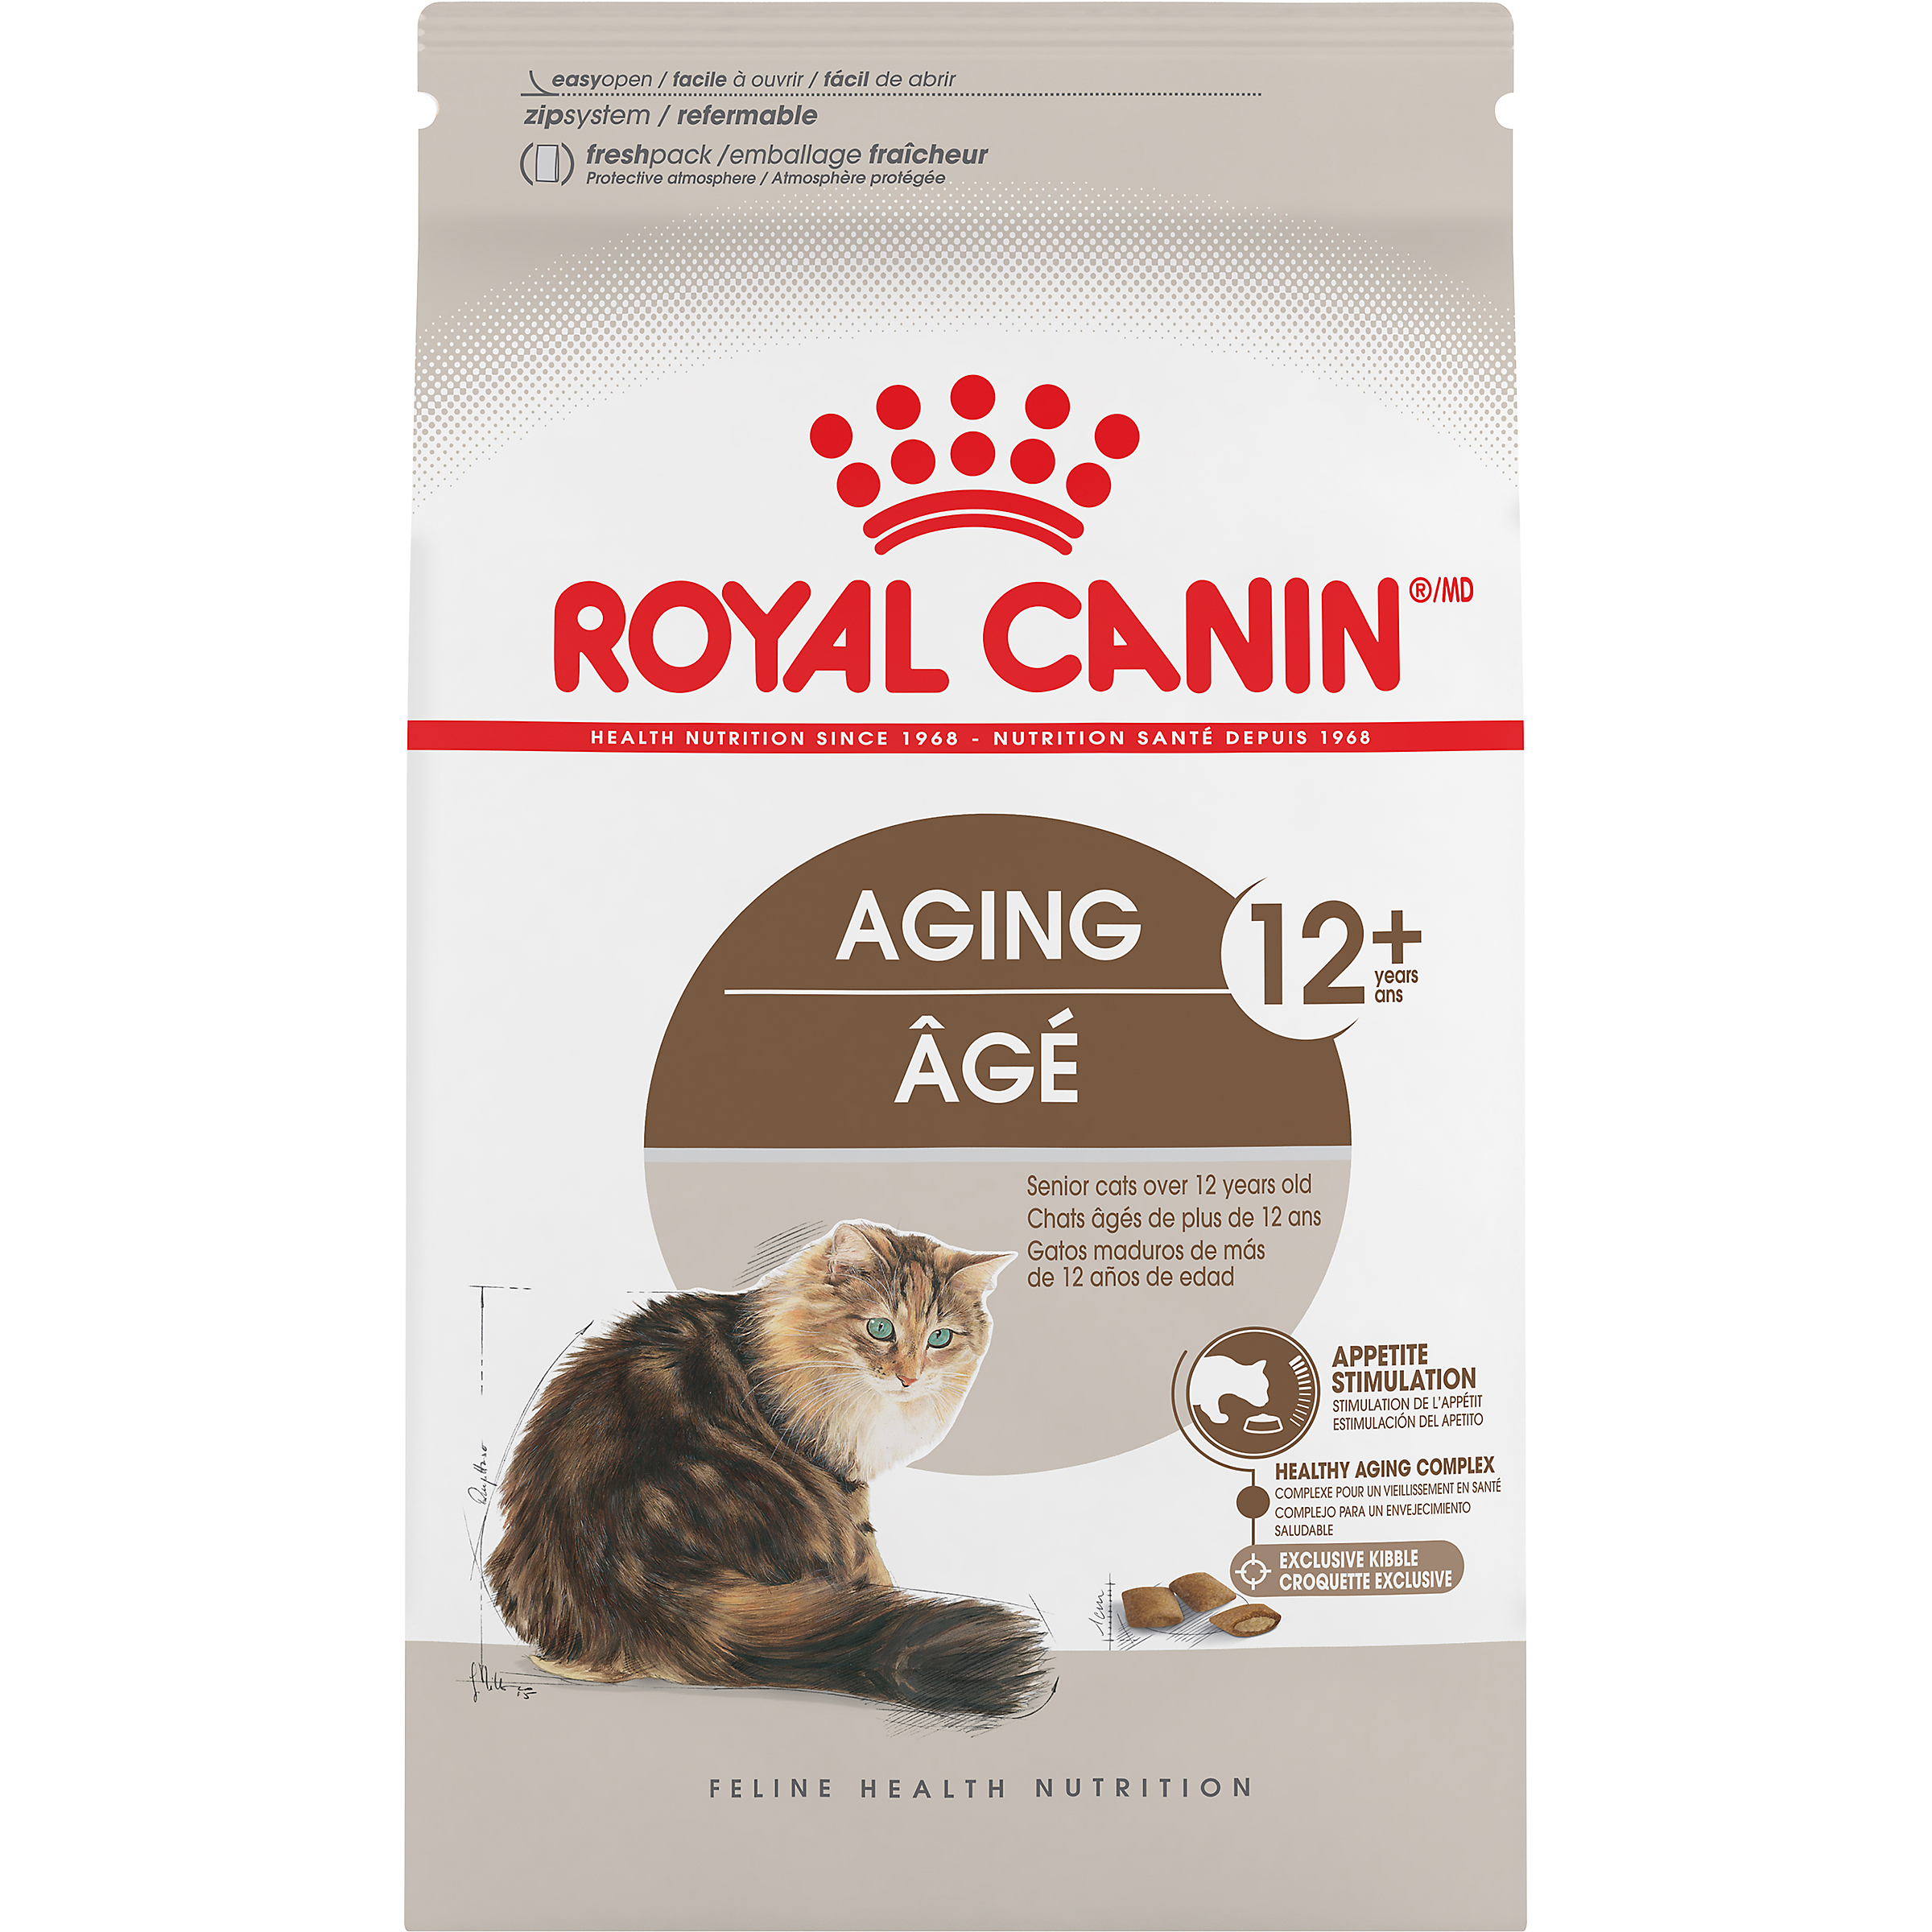 Royal Canin FHN Feline Aging Adult Dry Cat Food Image